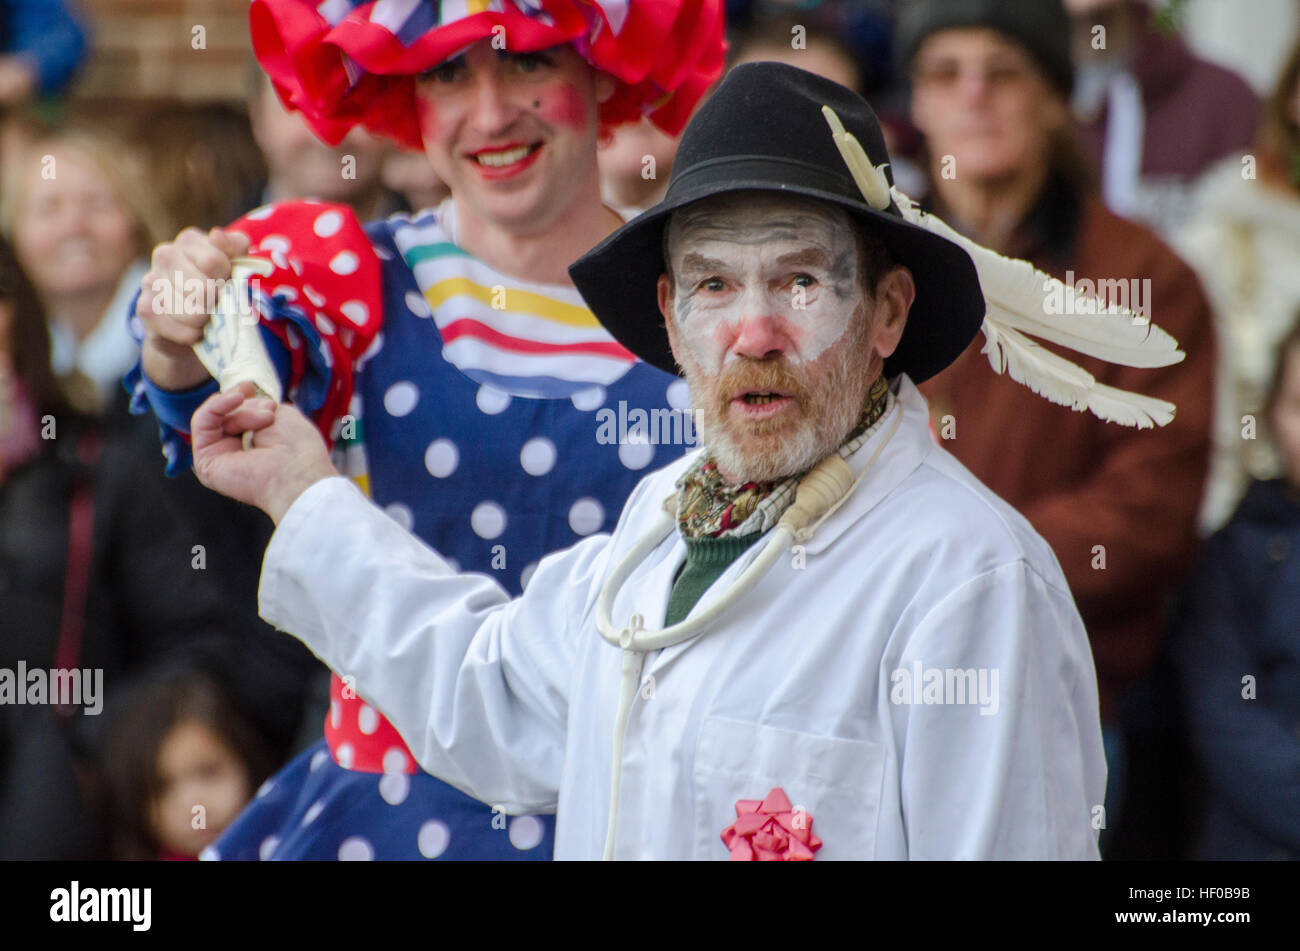 Wantage, UK. 26 Dec 2016. The character of Doctor Good played in a traditional Mummers Folk Play performed annually on Boxing Day in Wantage Market Place. Stock Photo